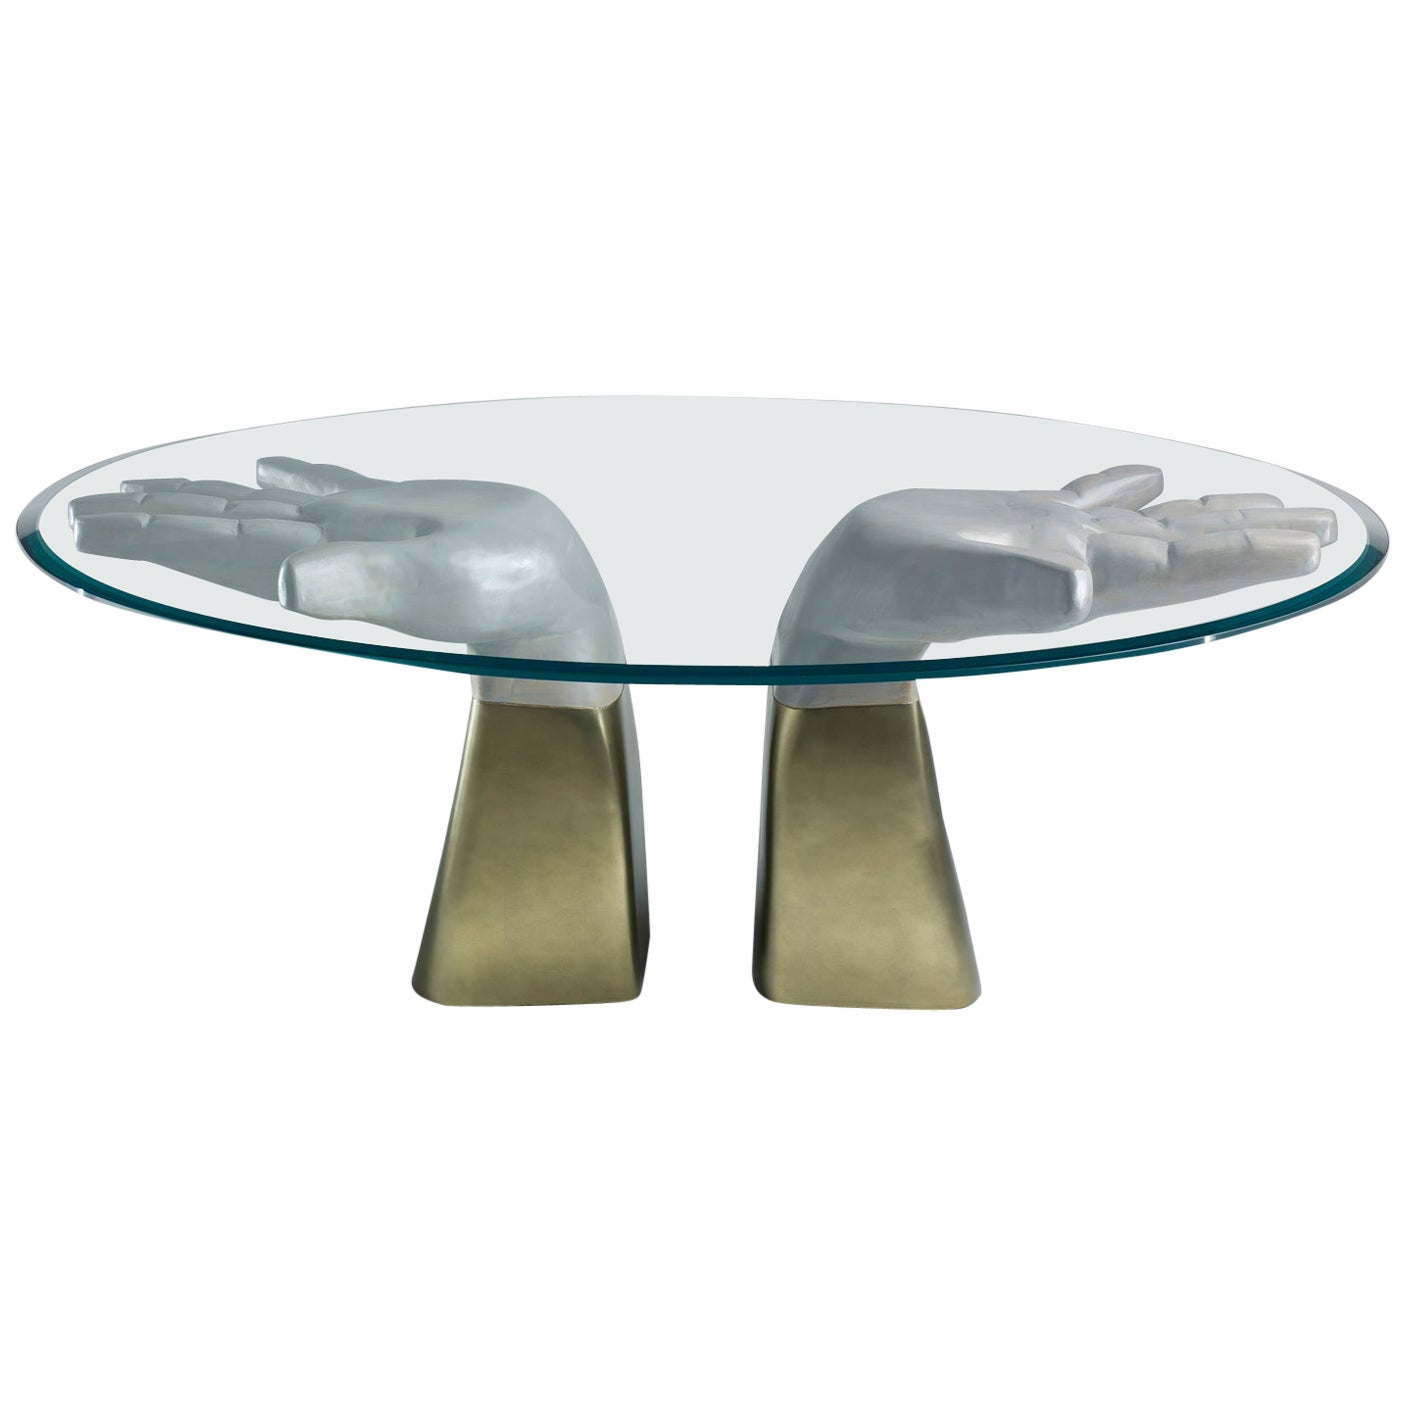 Prego Dining Table with Glass Top and Bronzed Gold Leaf Base